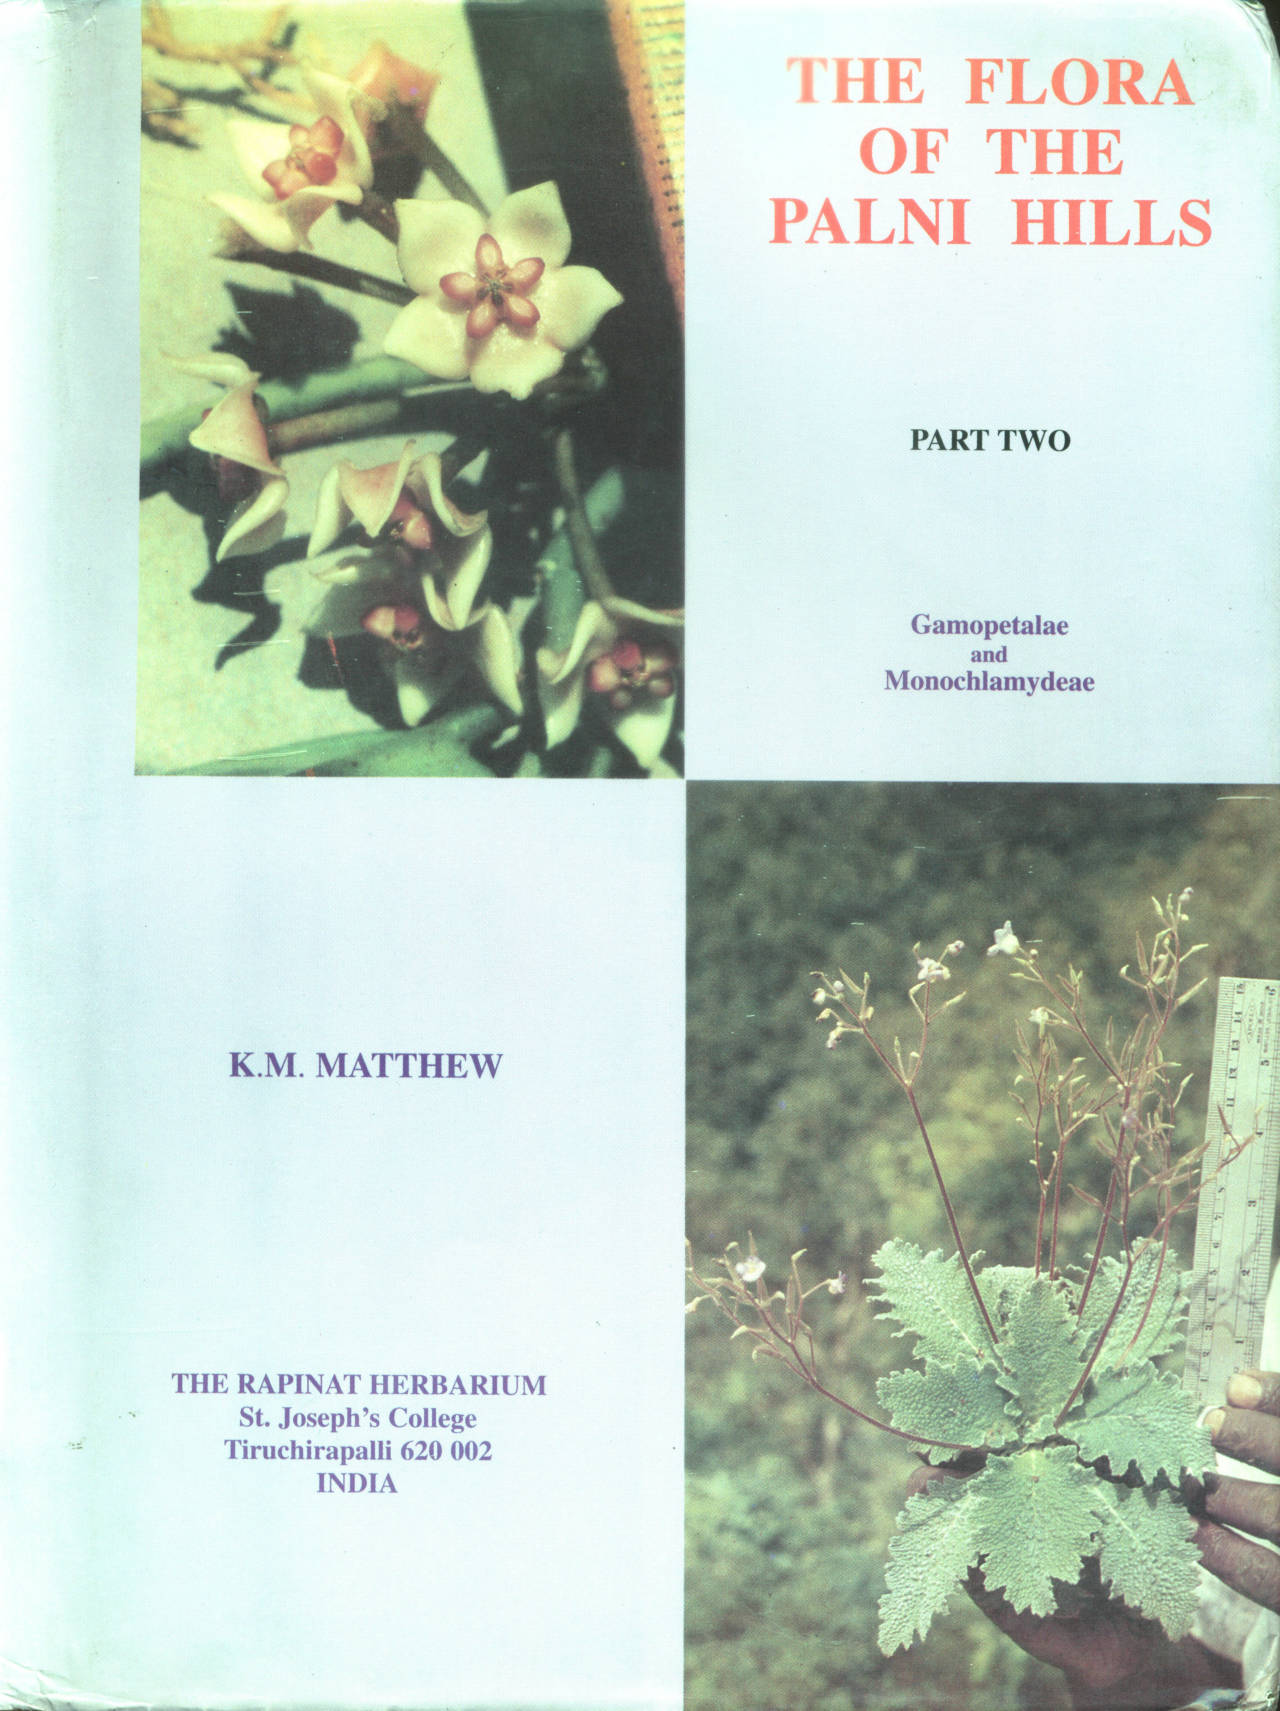 THE FLORA OF THE PALNI HILLS PART TWO